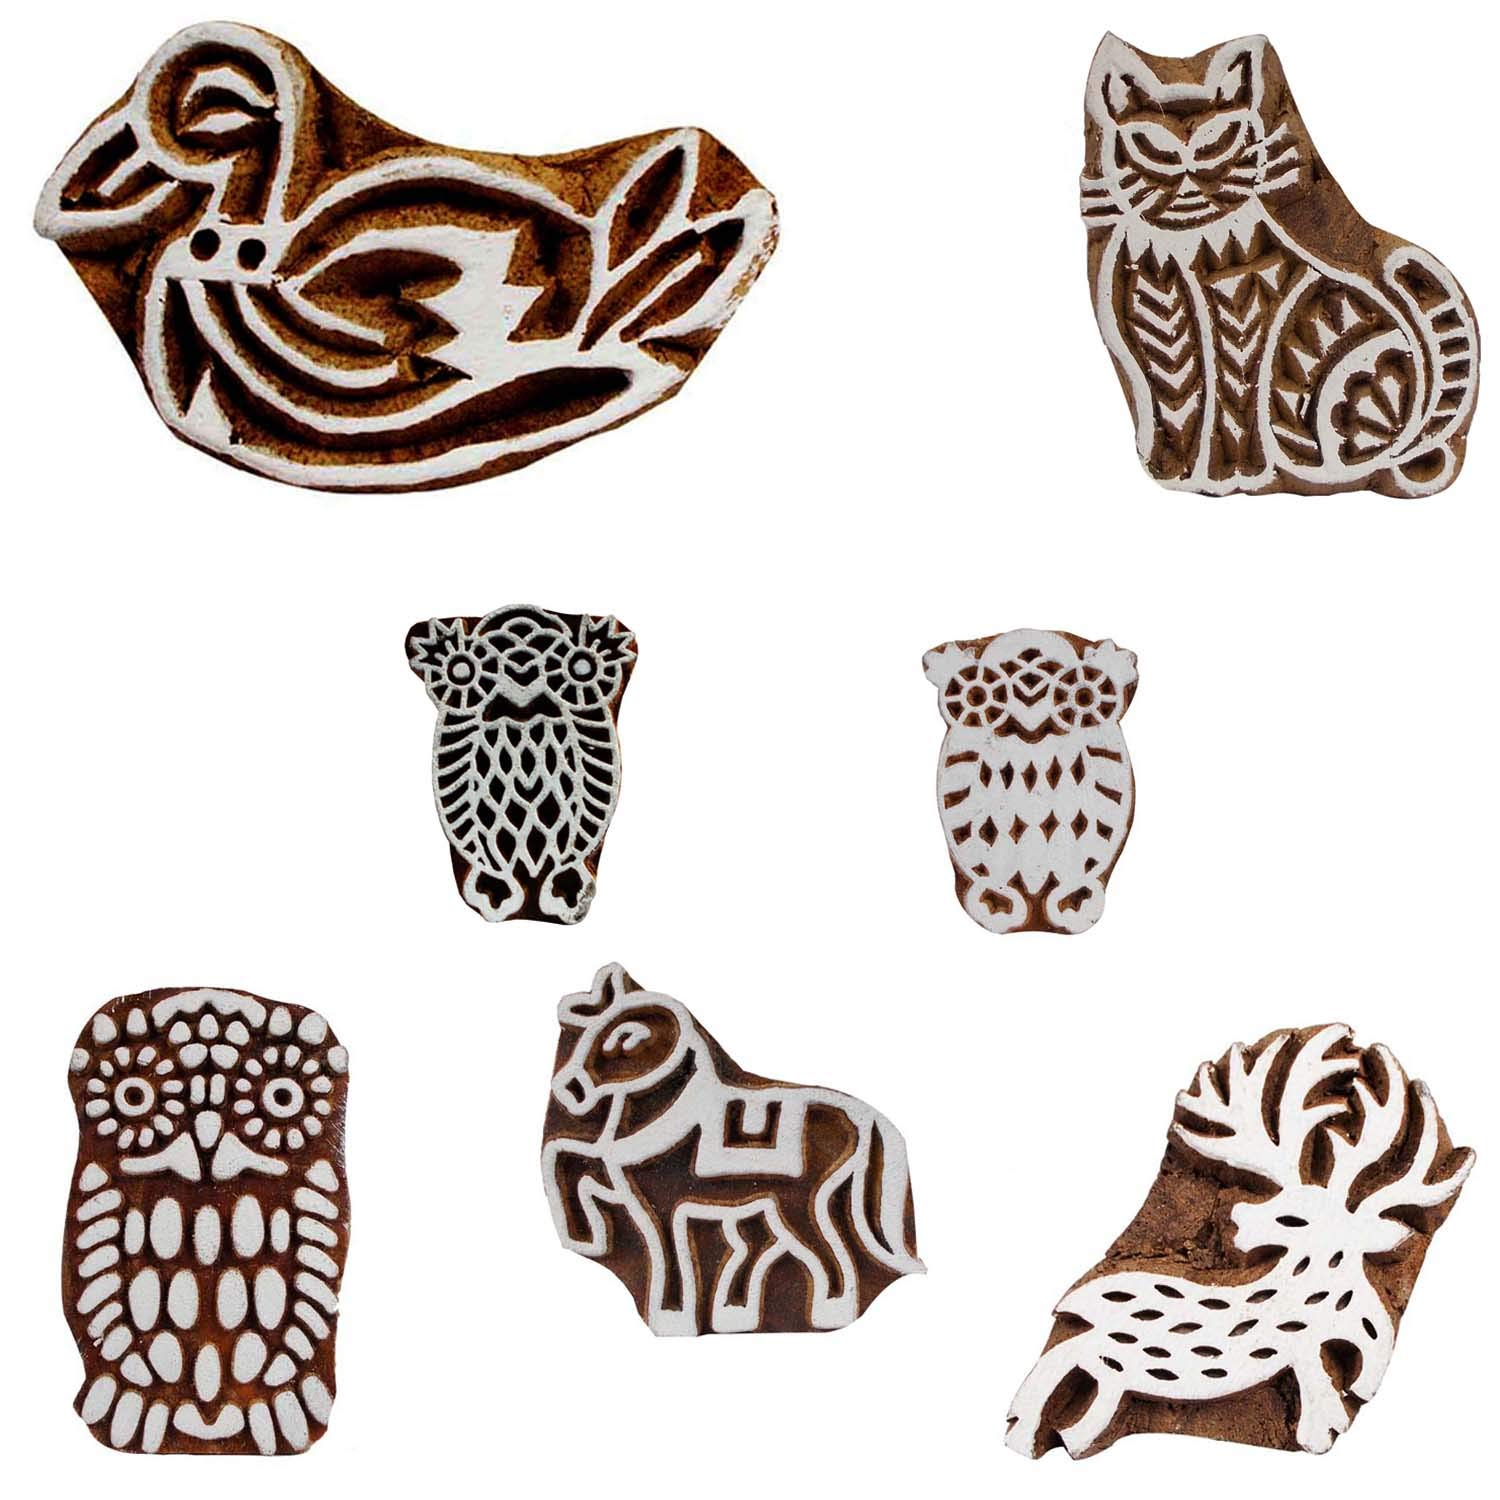 Handmade Printing Block Wooden Birds and Animals Textile Clay Pottery Scrapbook Stamps Blocks Pack of 7